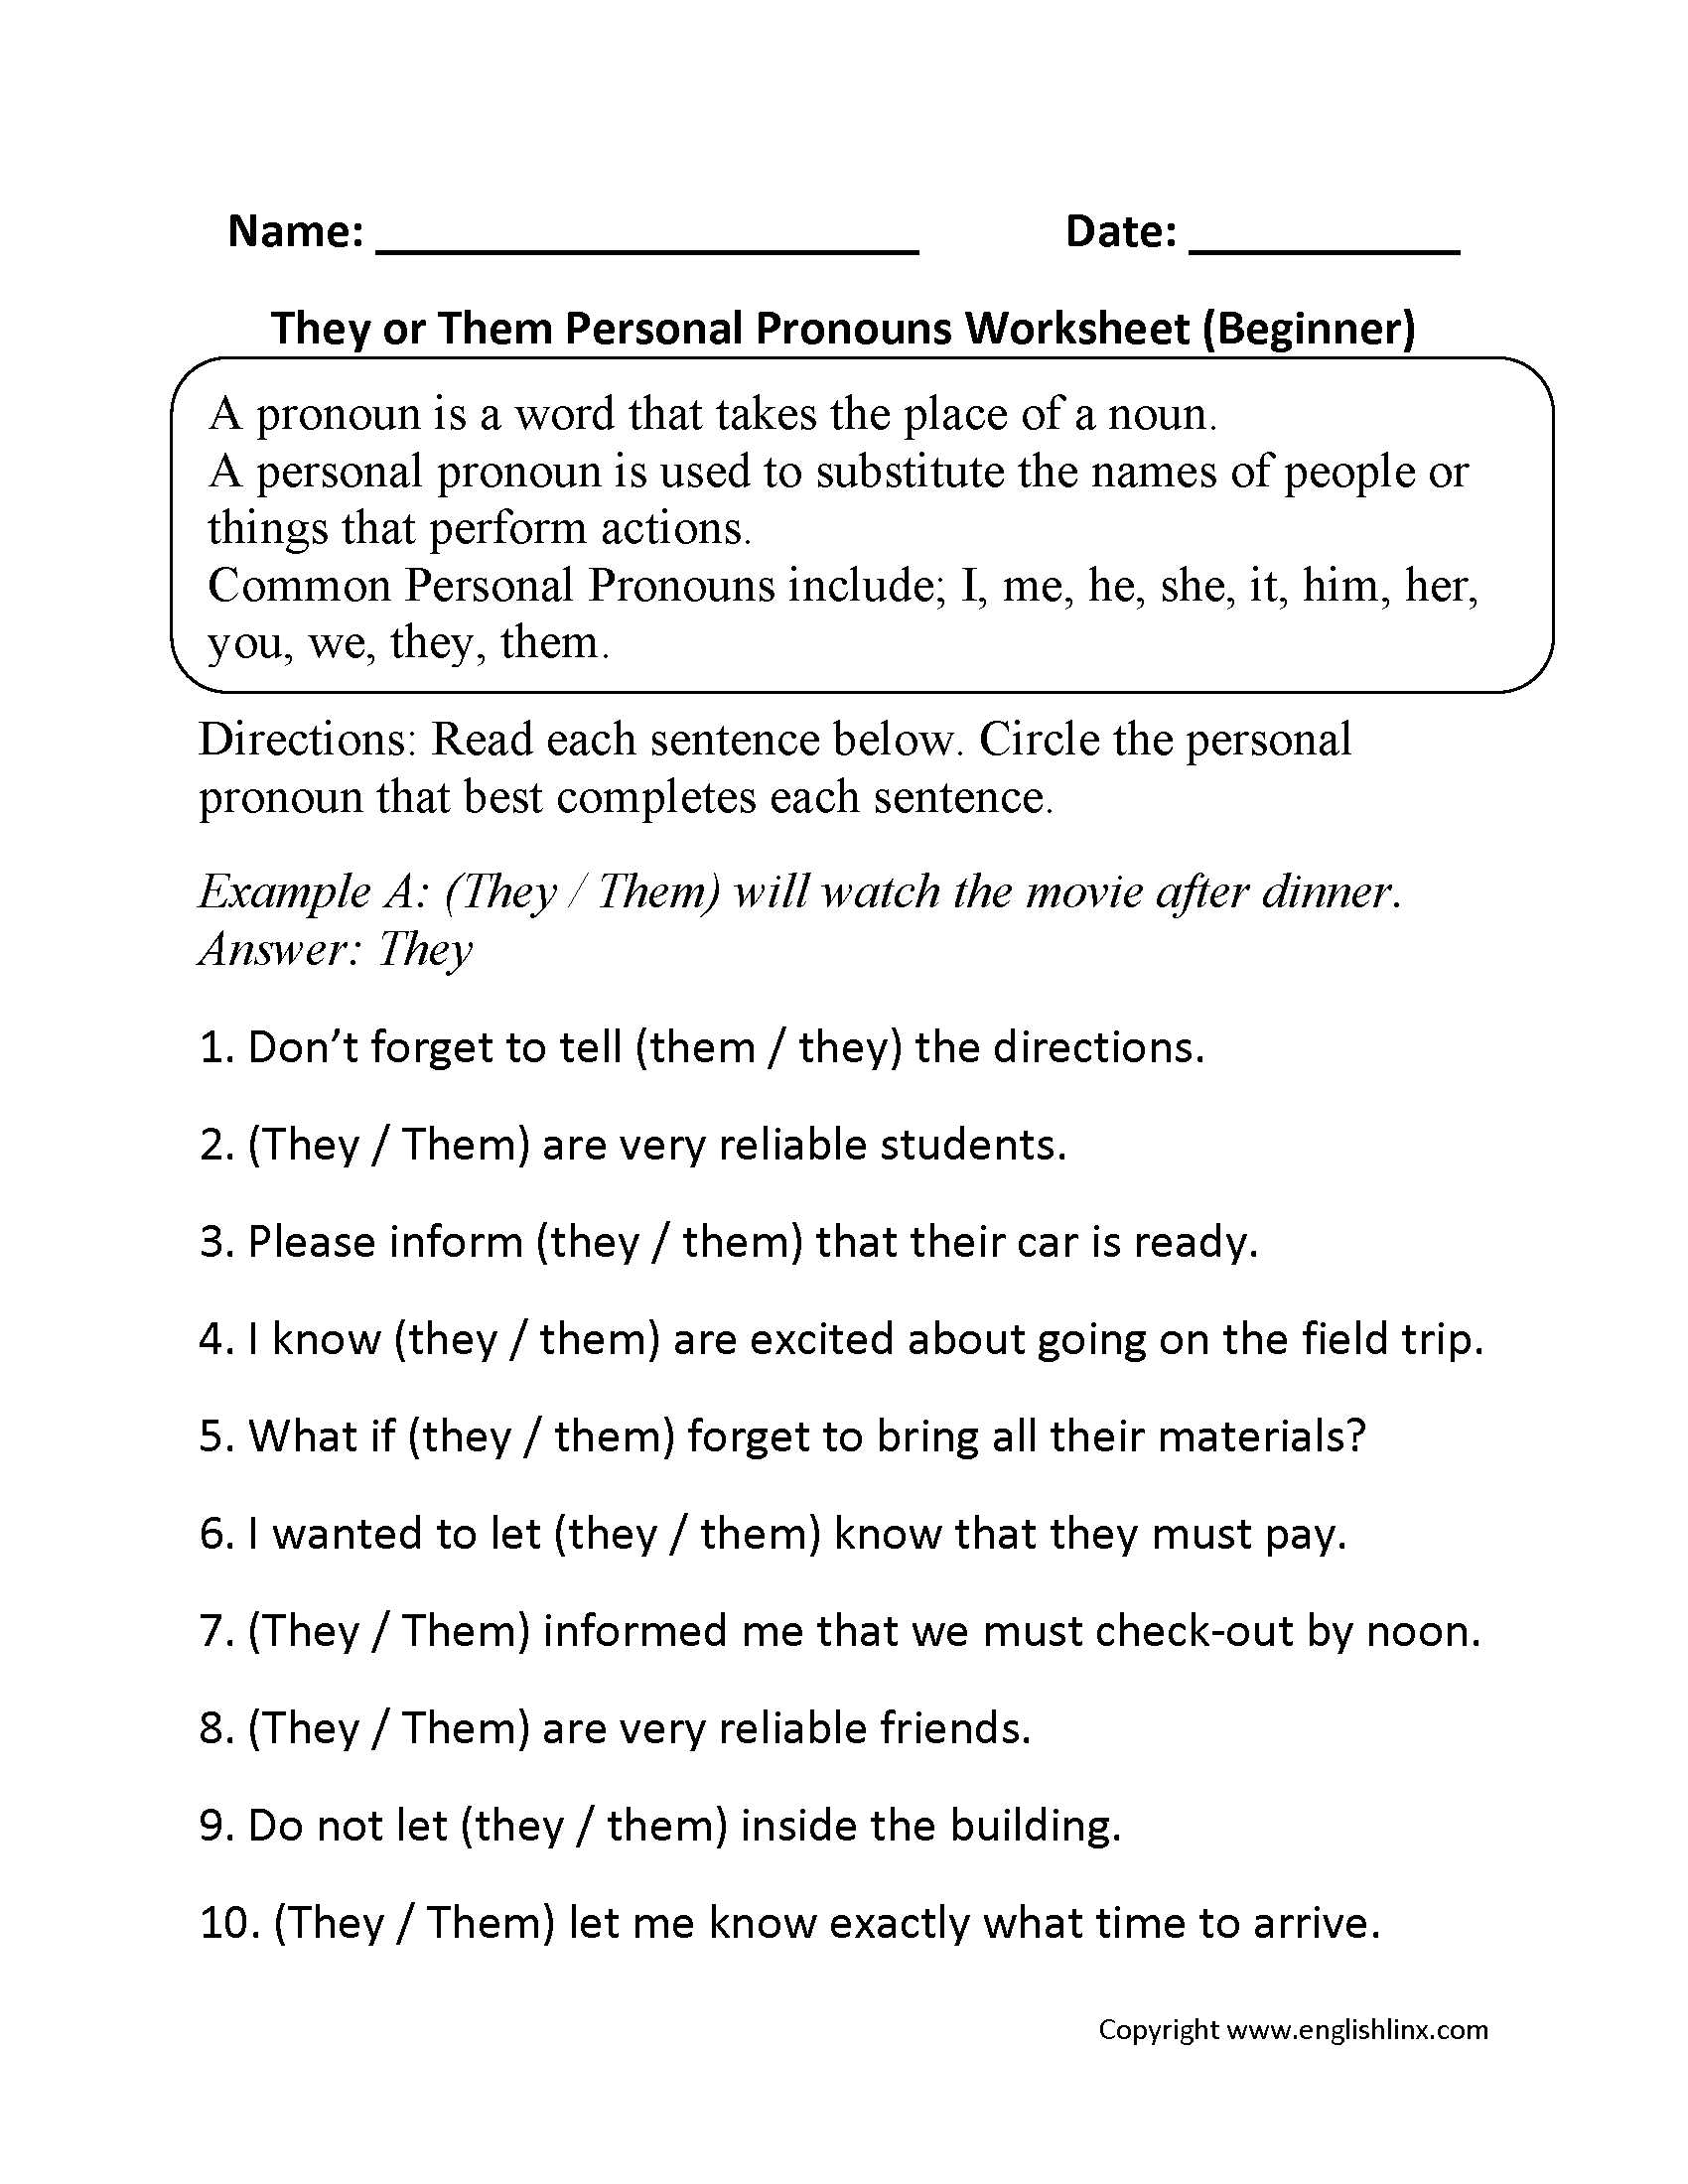 Rhyming Words Worksheets for Kindergarten as Well as He She It Worksheets for Kindergarten Pdf Kidz Activities